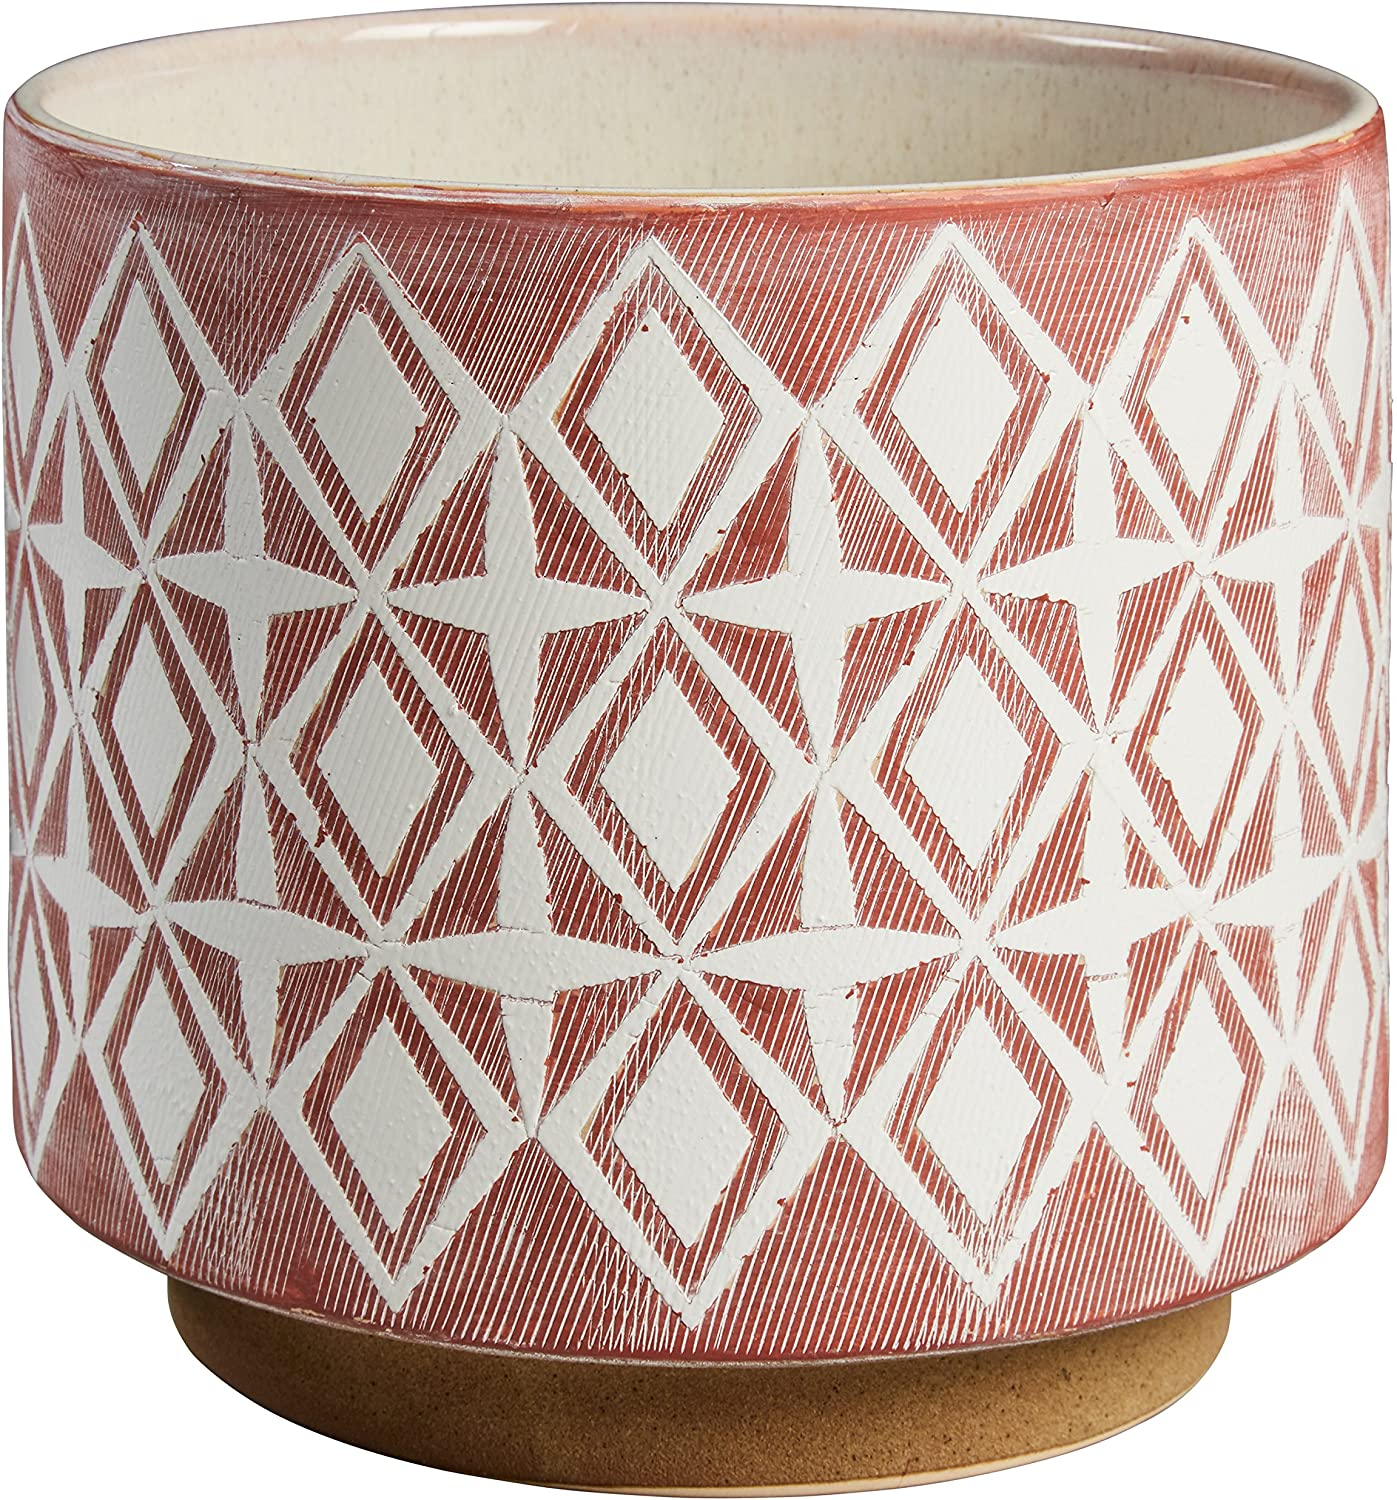 "Amazon Brand – Rivet Modern Geometric Ceramic Planter, 8.6""H, Rose"